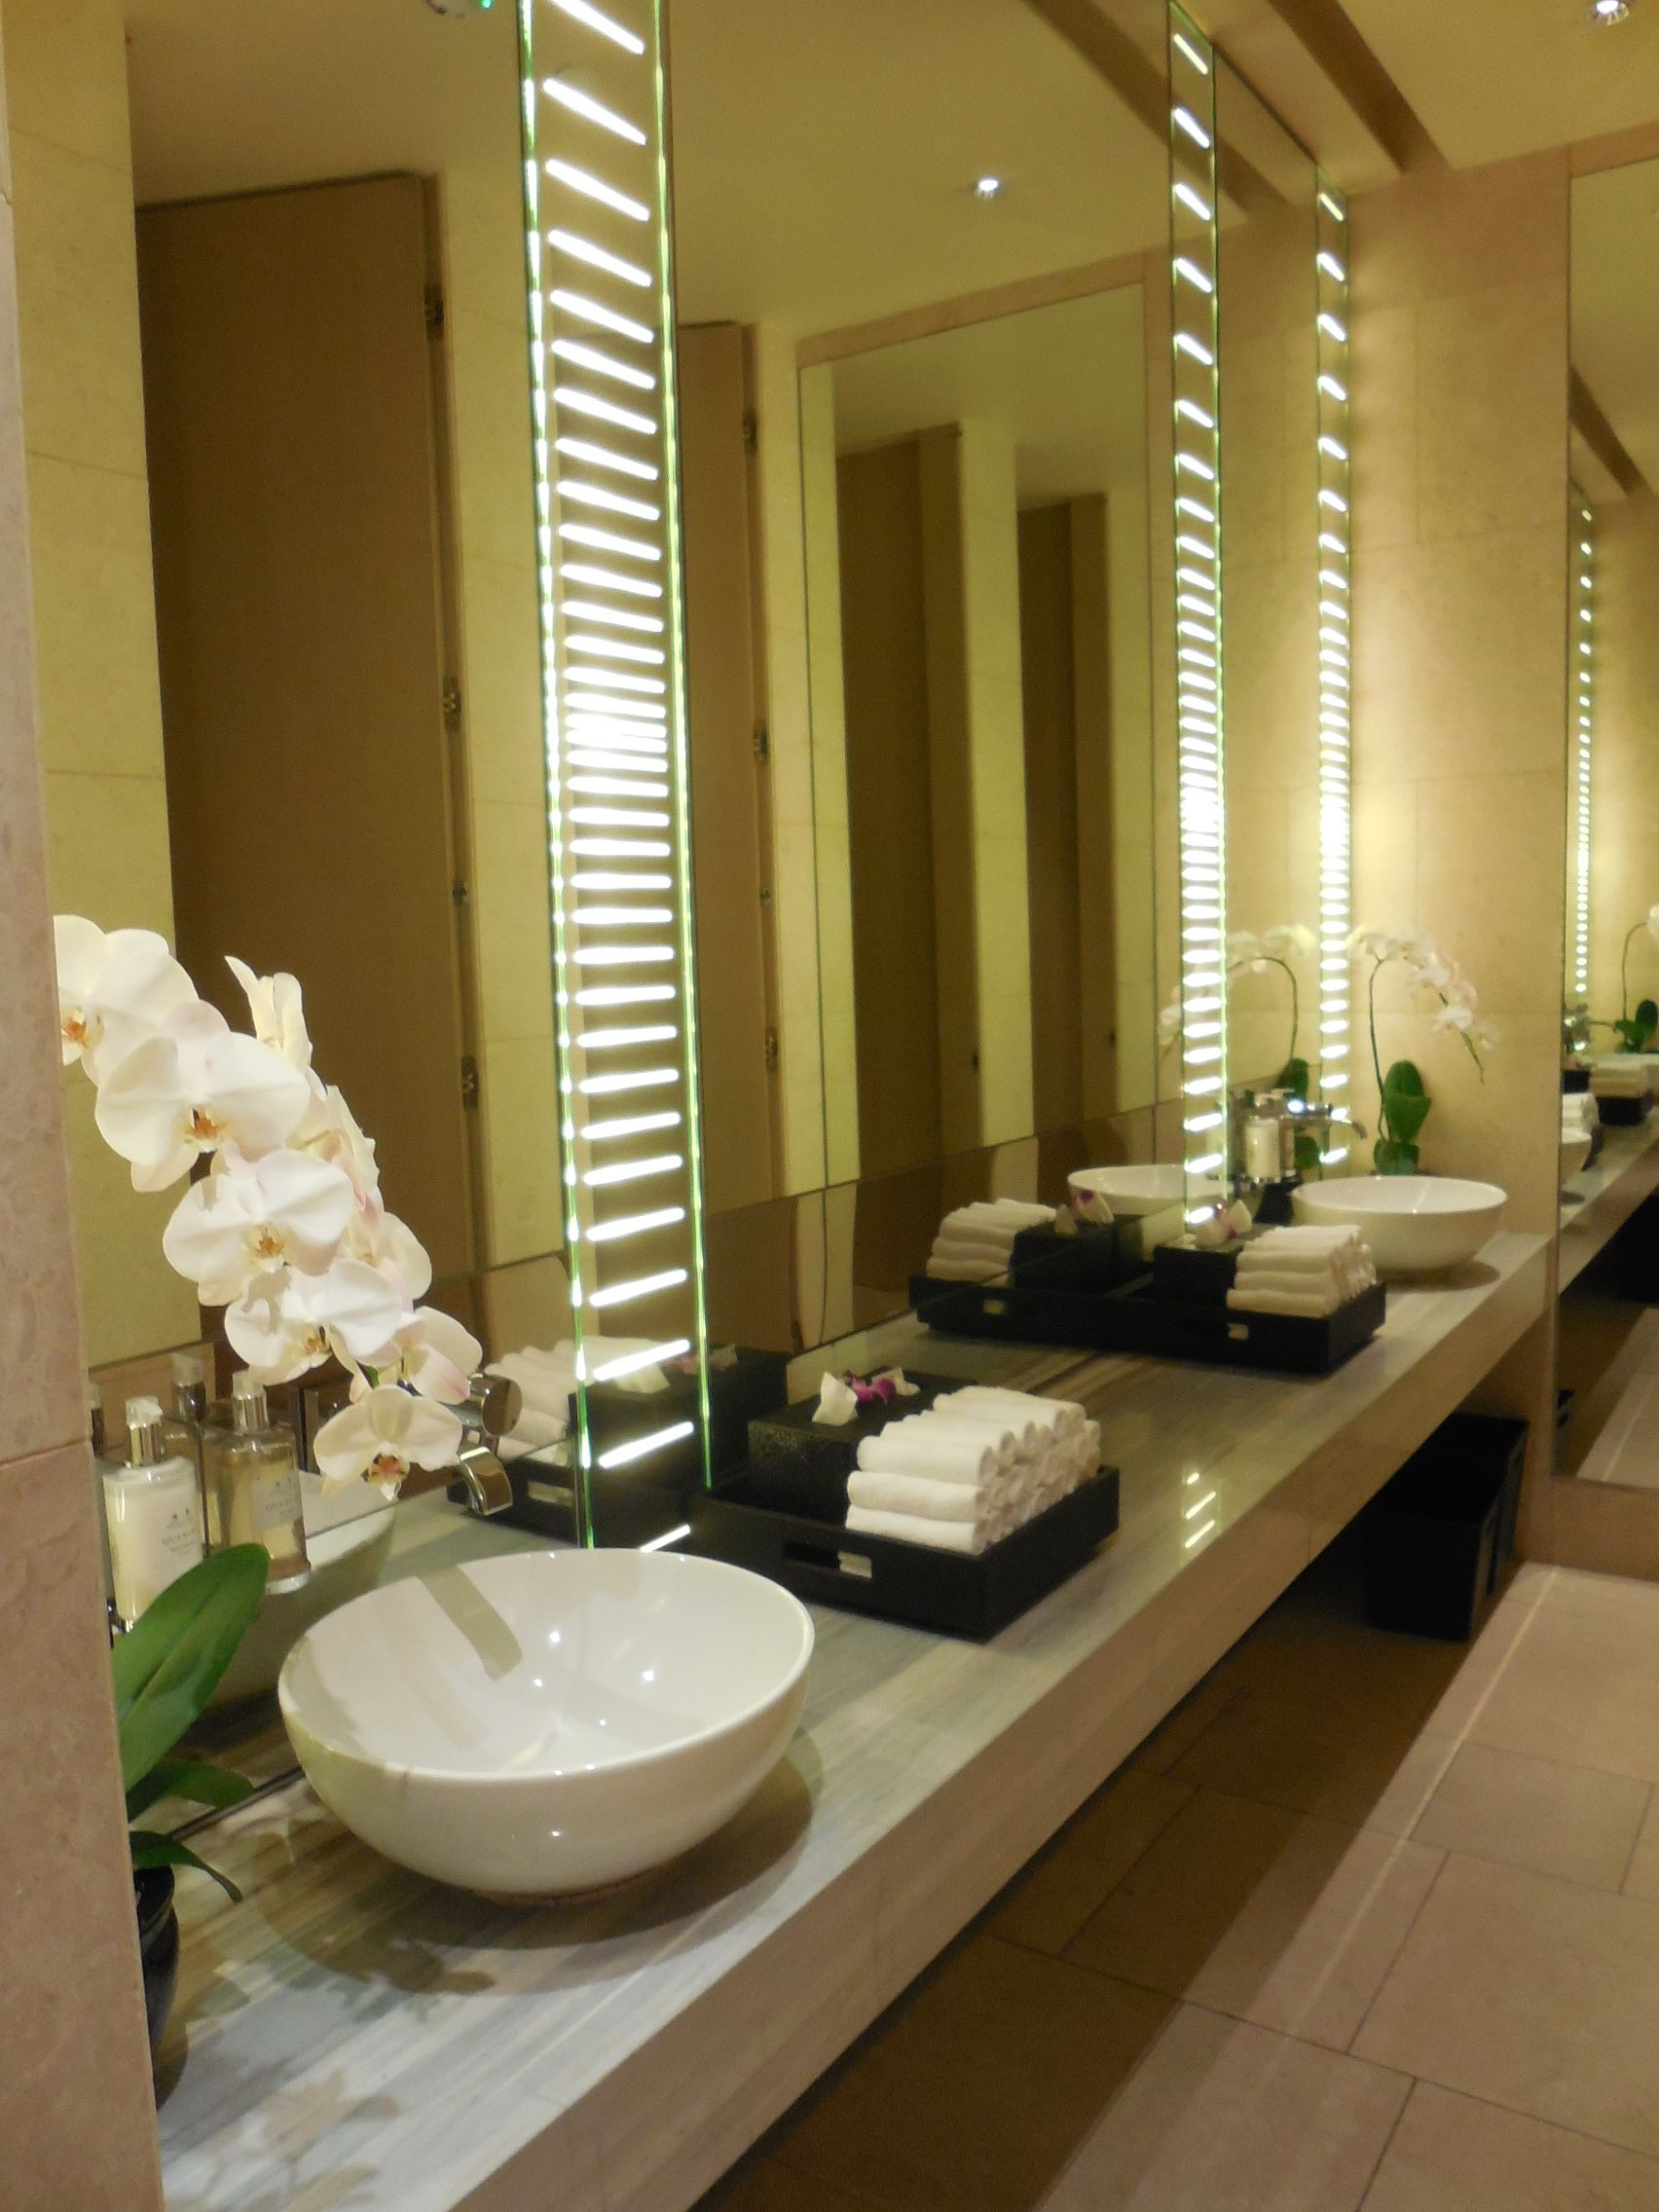 Bathrooms Decor Orchids In The Rest Room Make A Difference